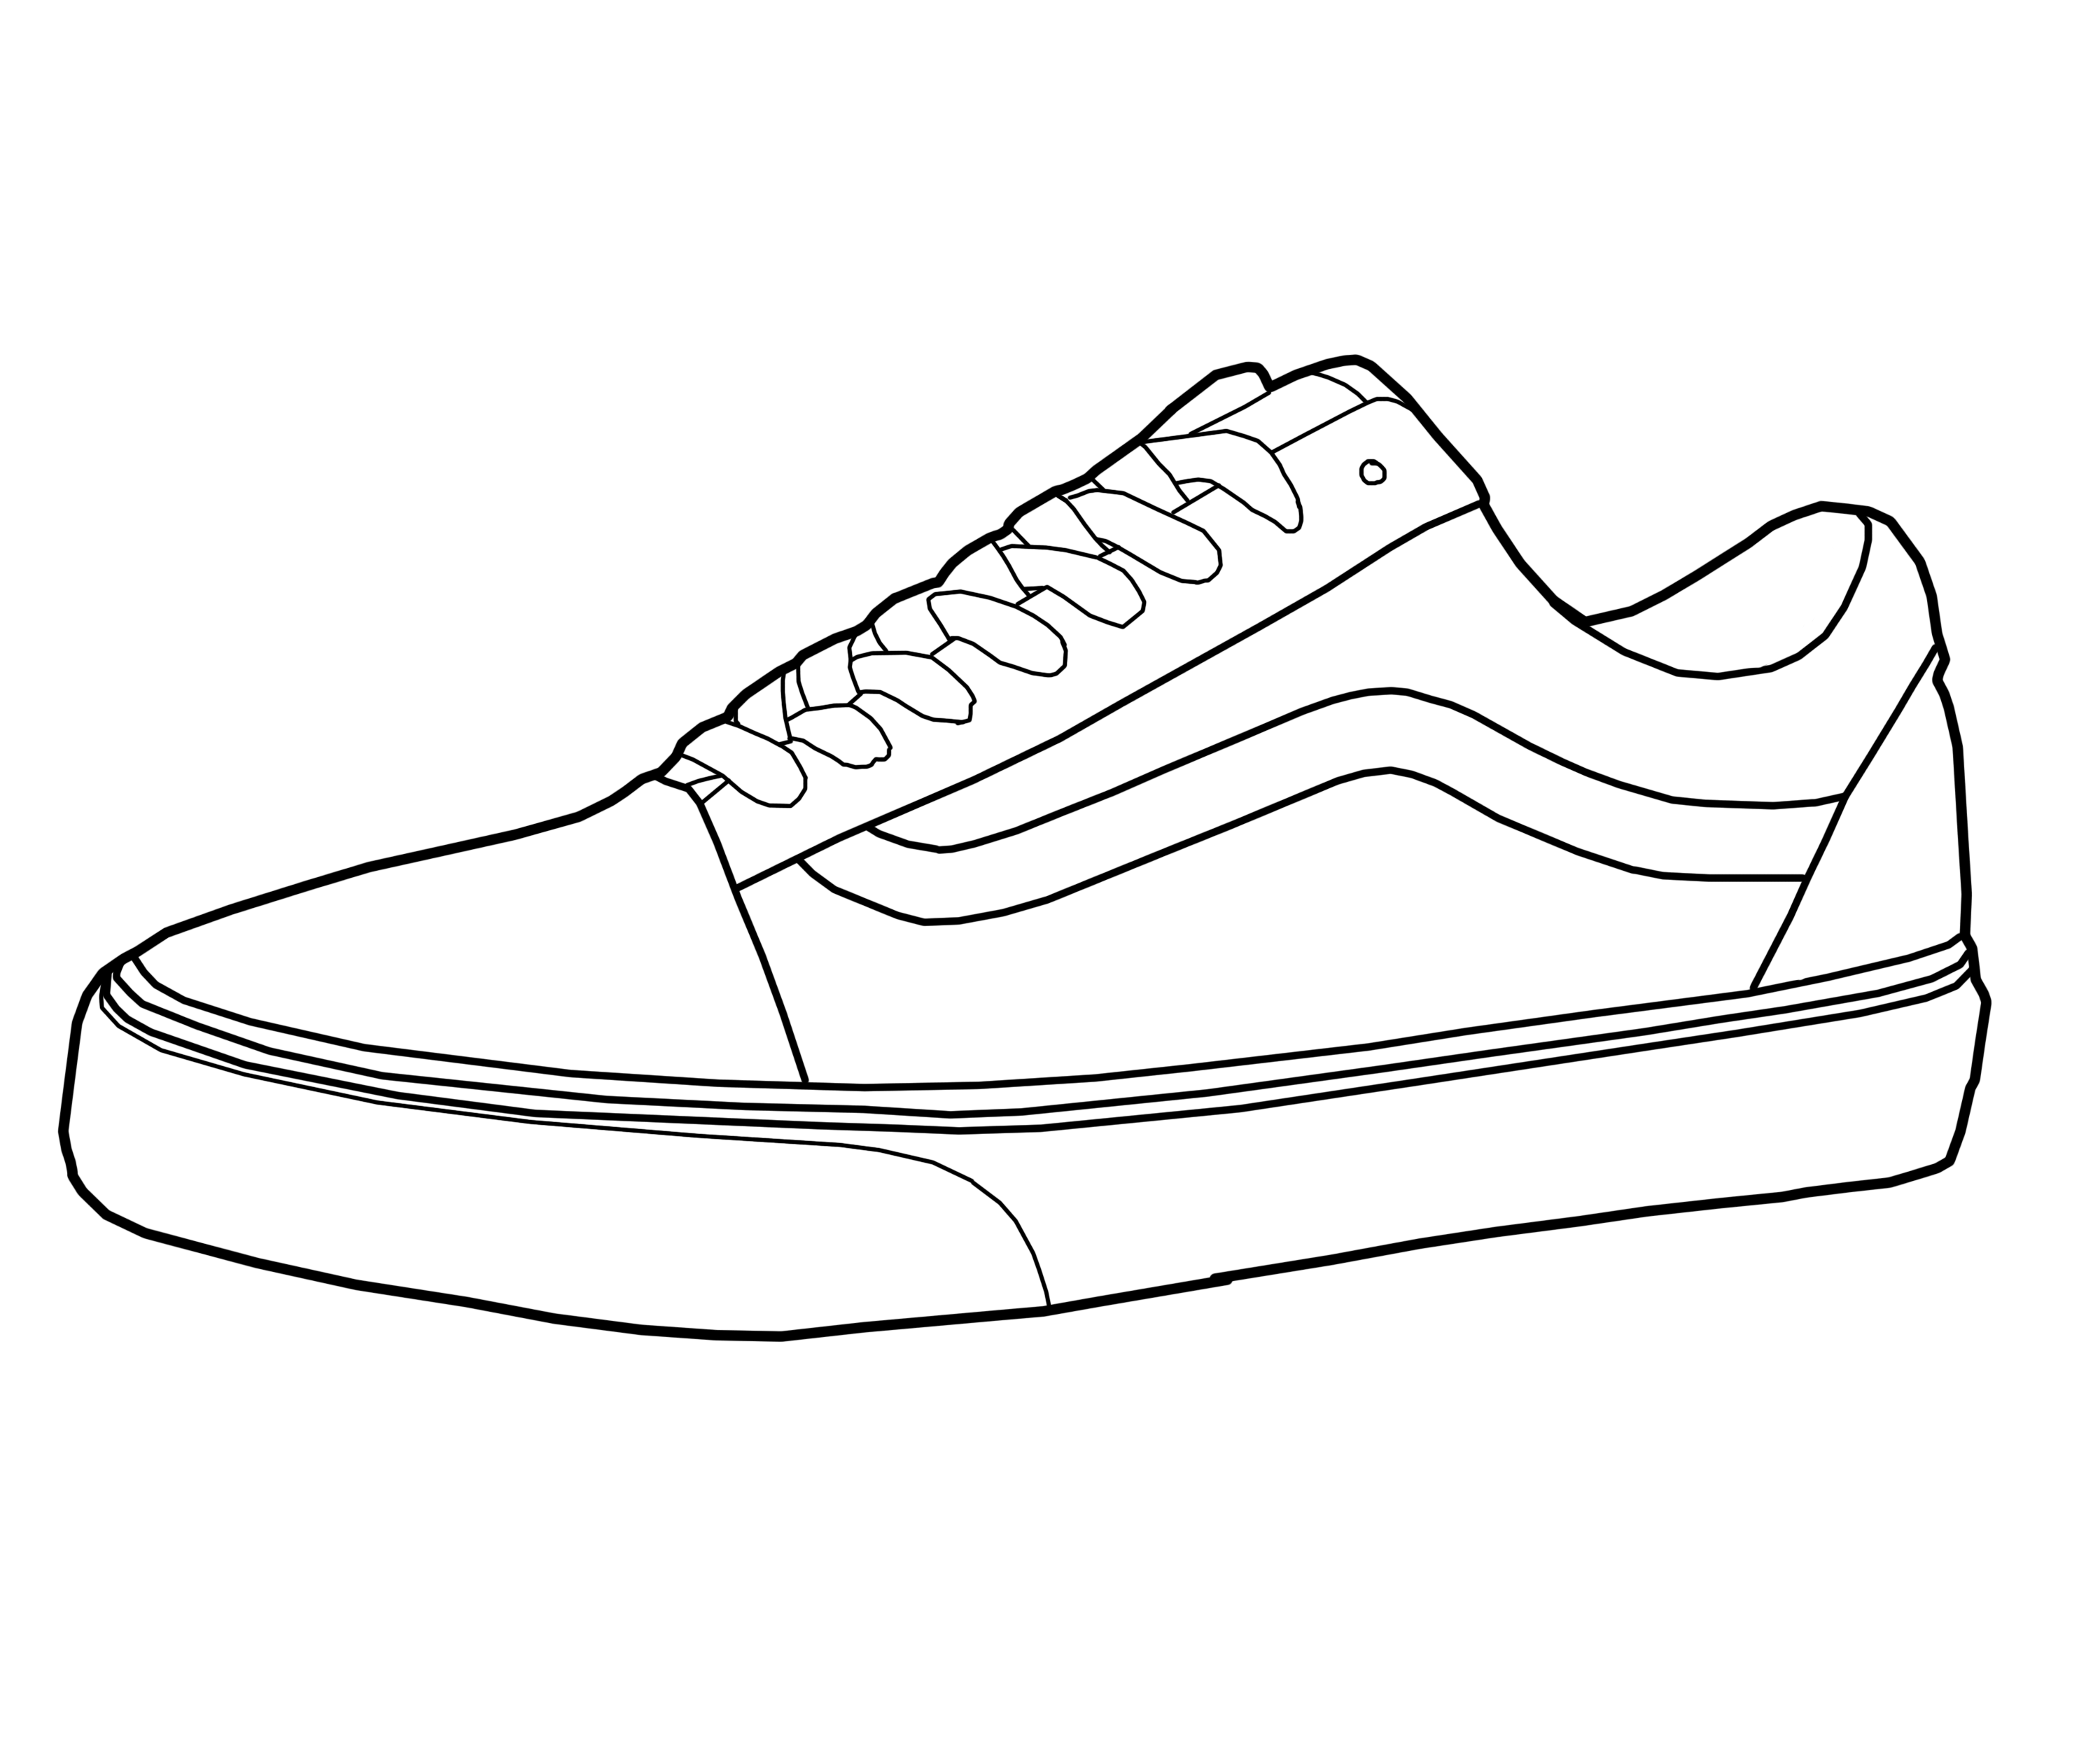 Vans Shoe Drawings | PE/Health in 2019 | Shoe template ...